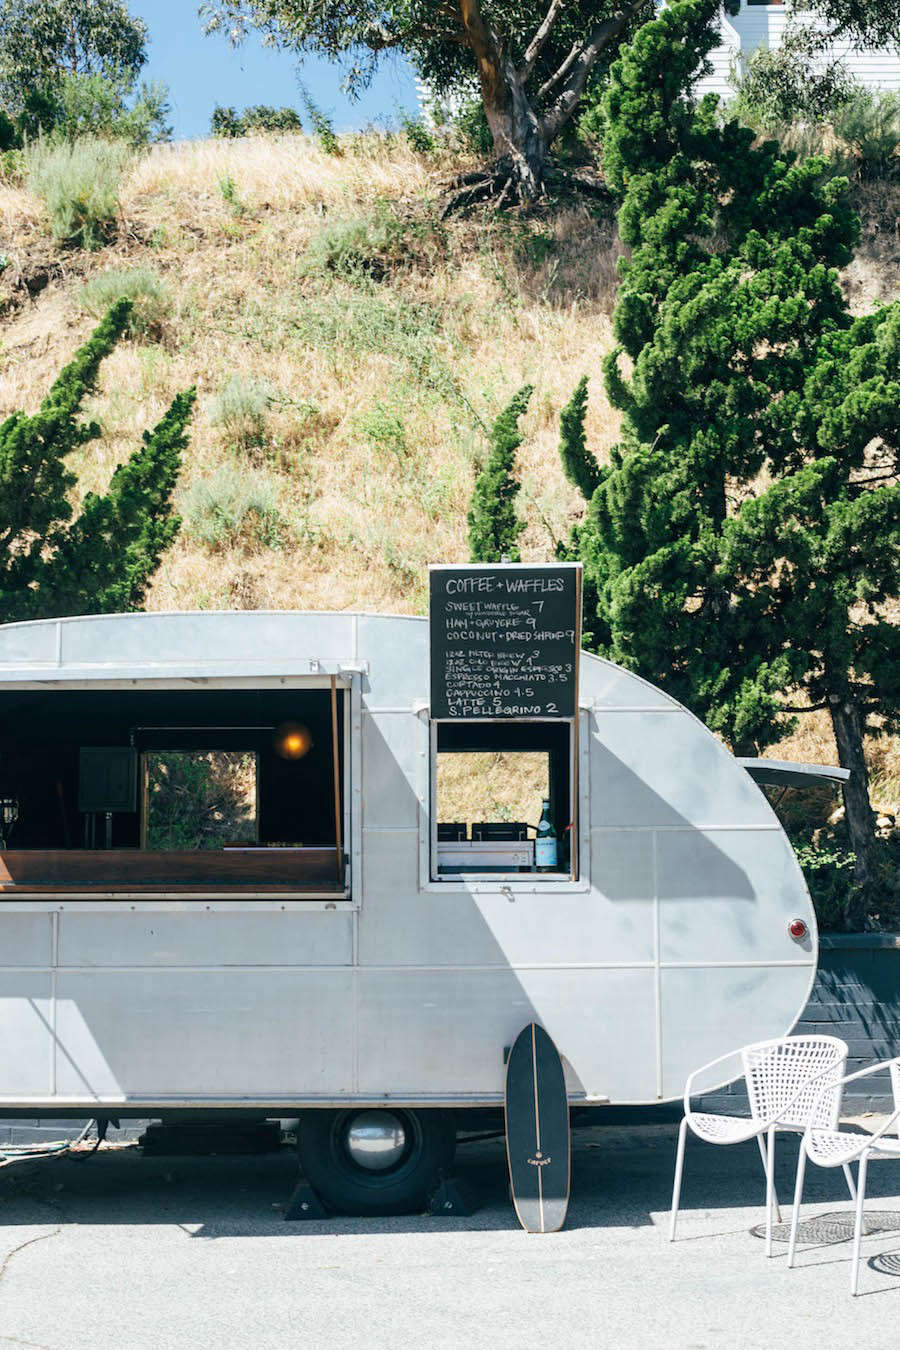 LA-based French chef Ludo Lefebvre's offers guests coffee and waffles from a converted Airstream in the hotel&#8